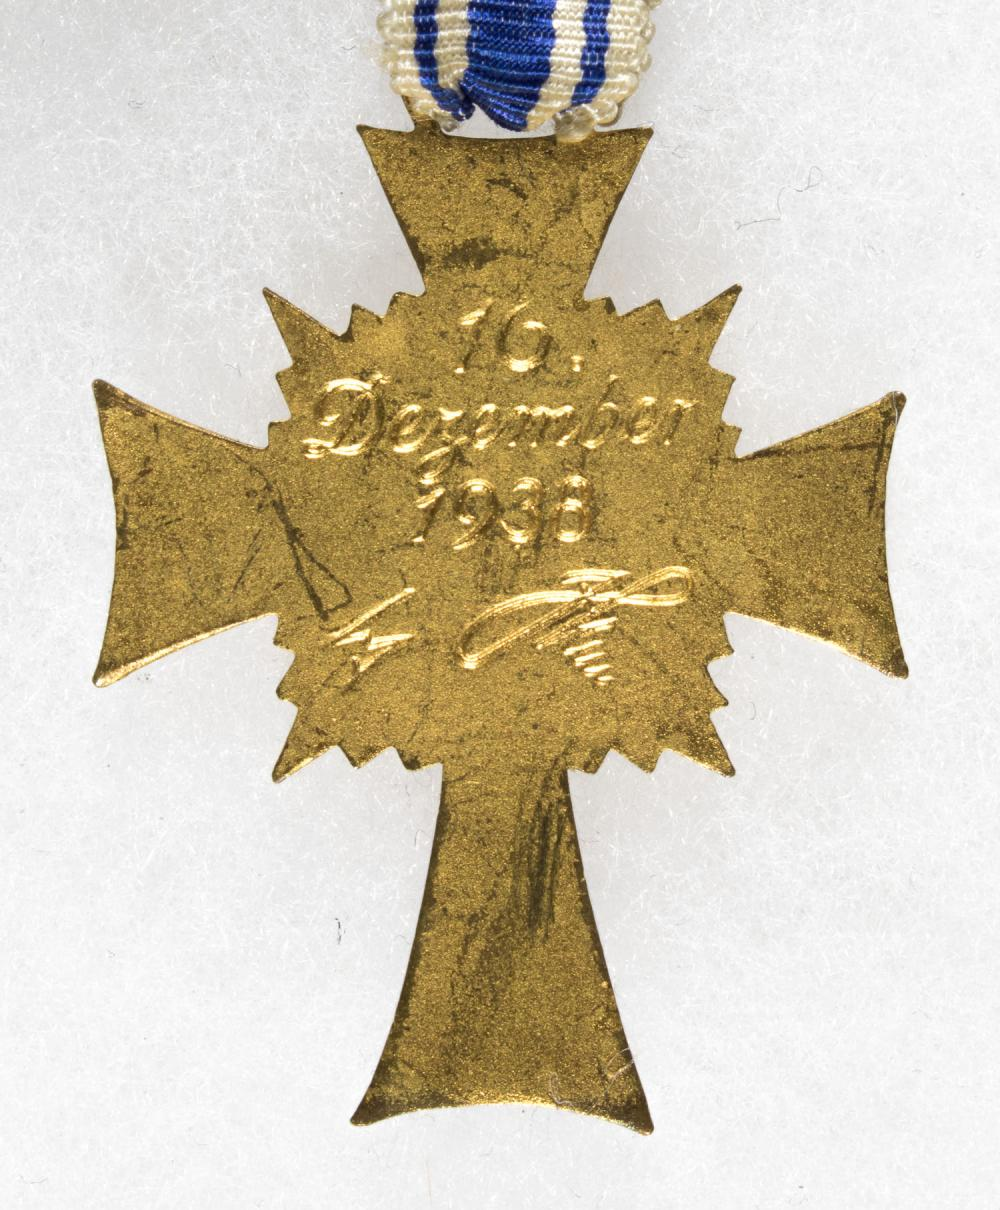 MOTHER'S CROSS IN GOLD